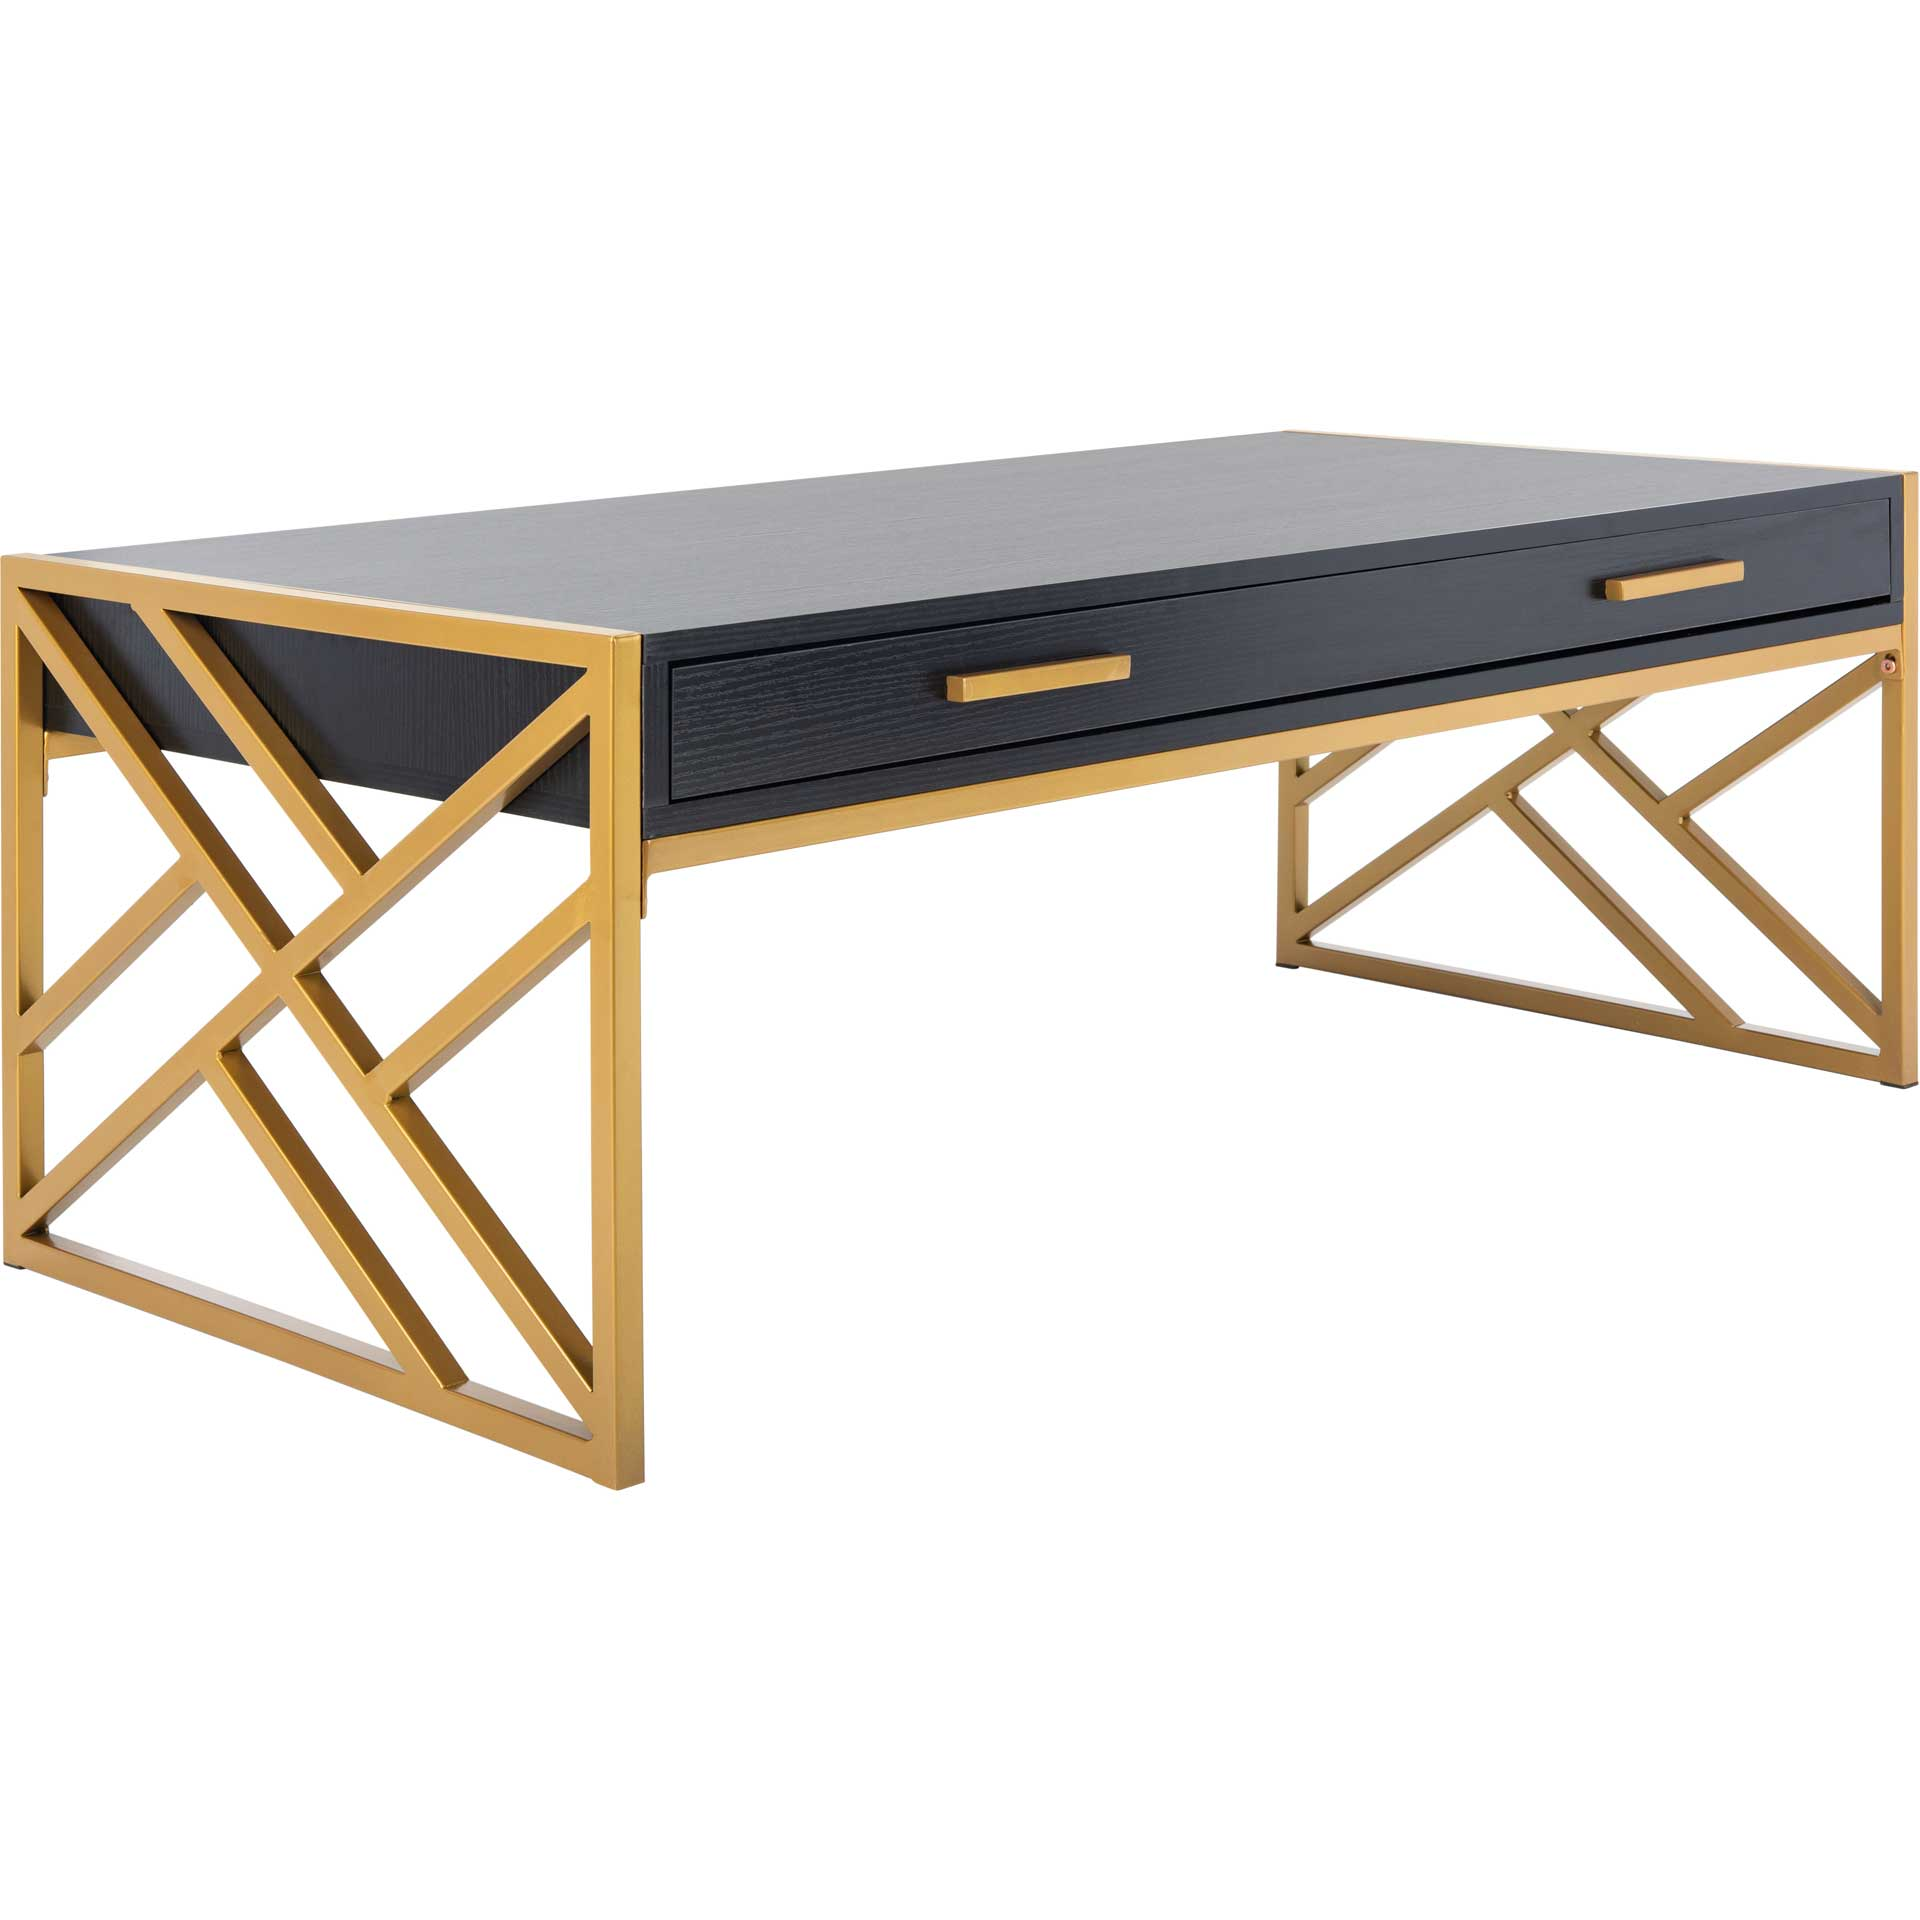 Elias 2 Drawer Coffee Table Black/Gold